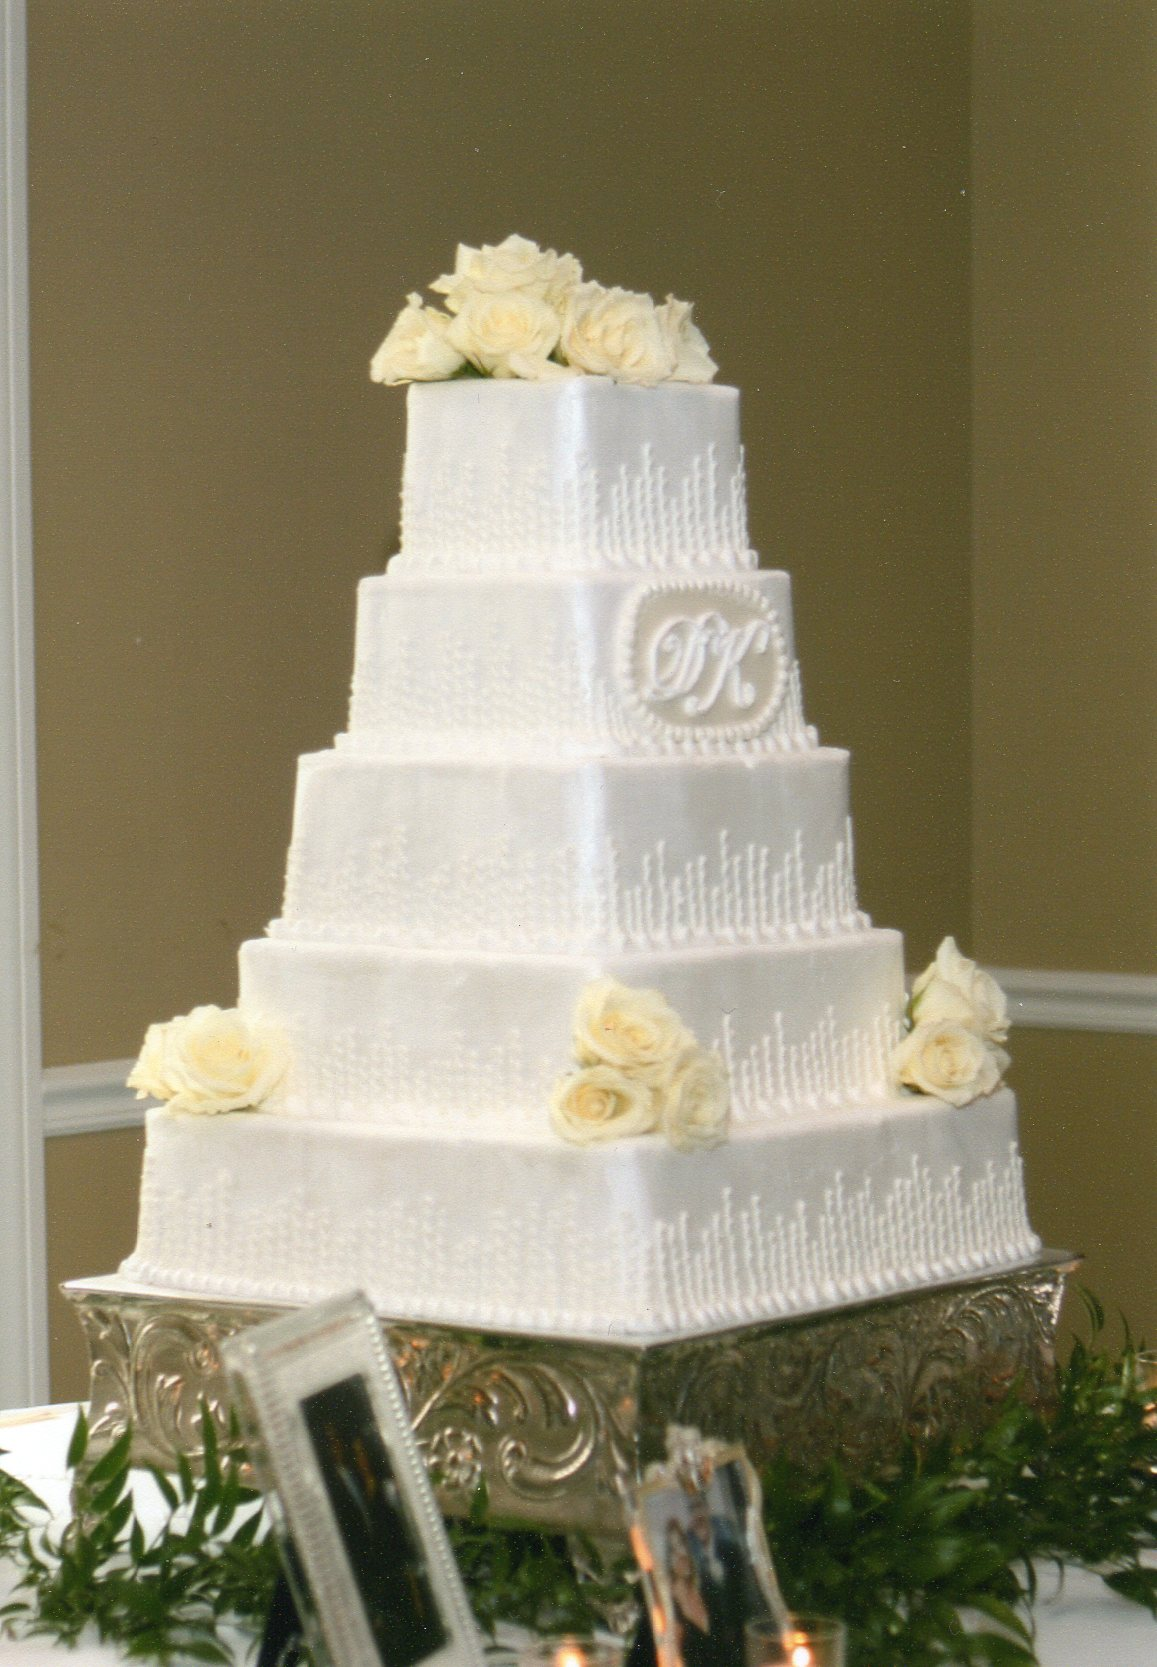 Sweet Cakes For My Tooth No Not Wedding Flowersbut